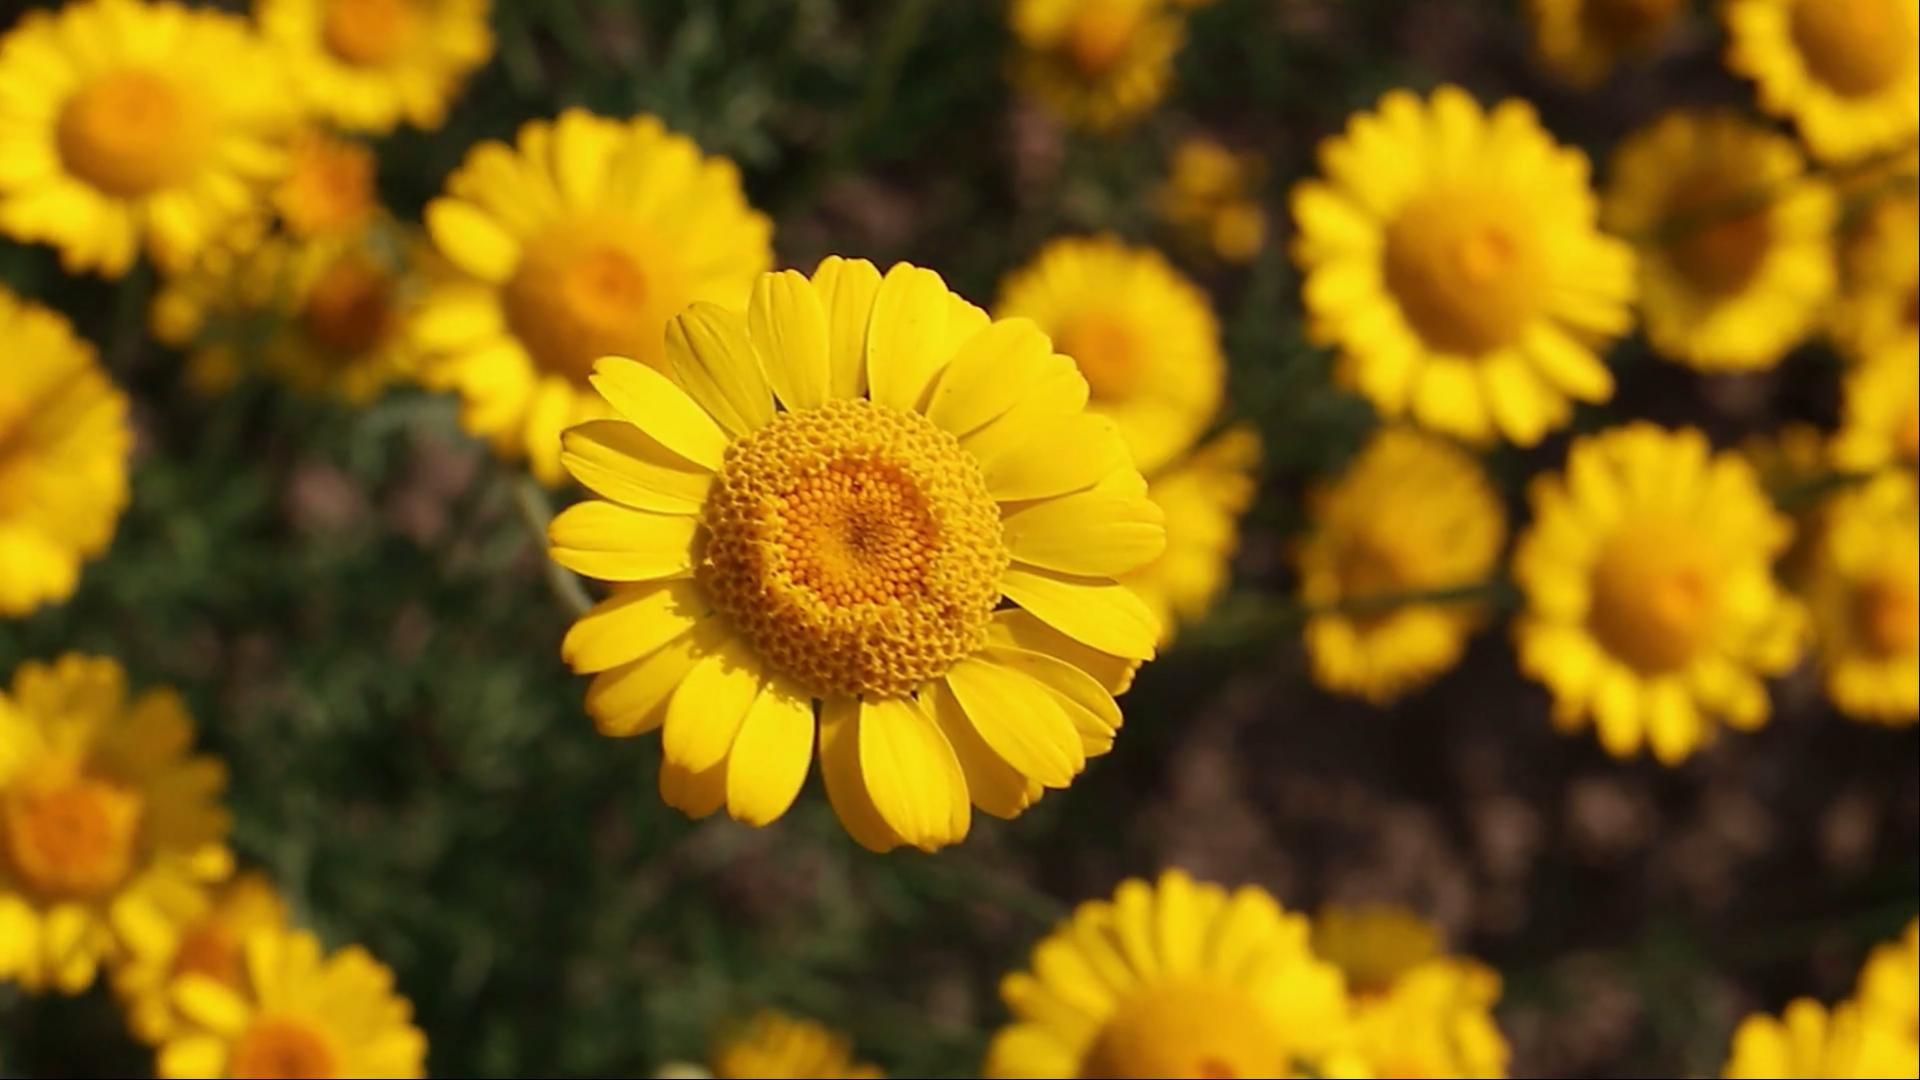 Best Hd Wallpapers For Laptop 1080p With Yellow Daisy Flower Images